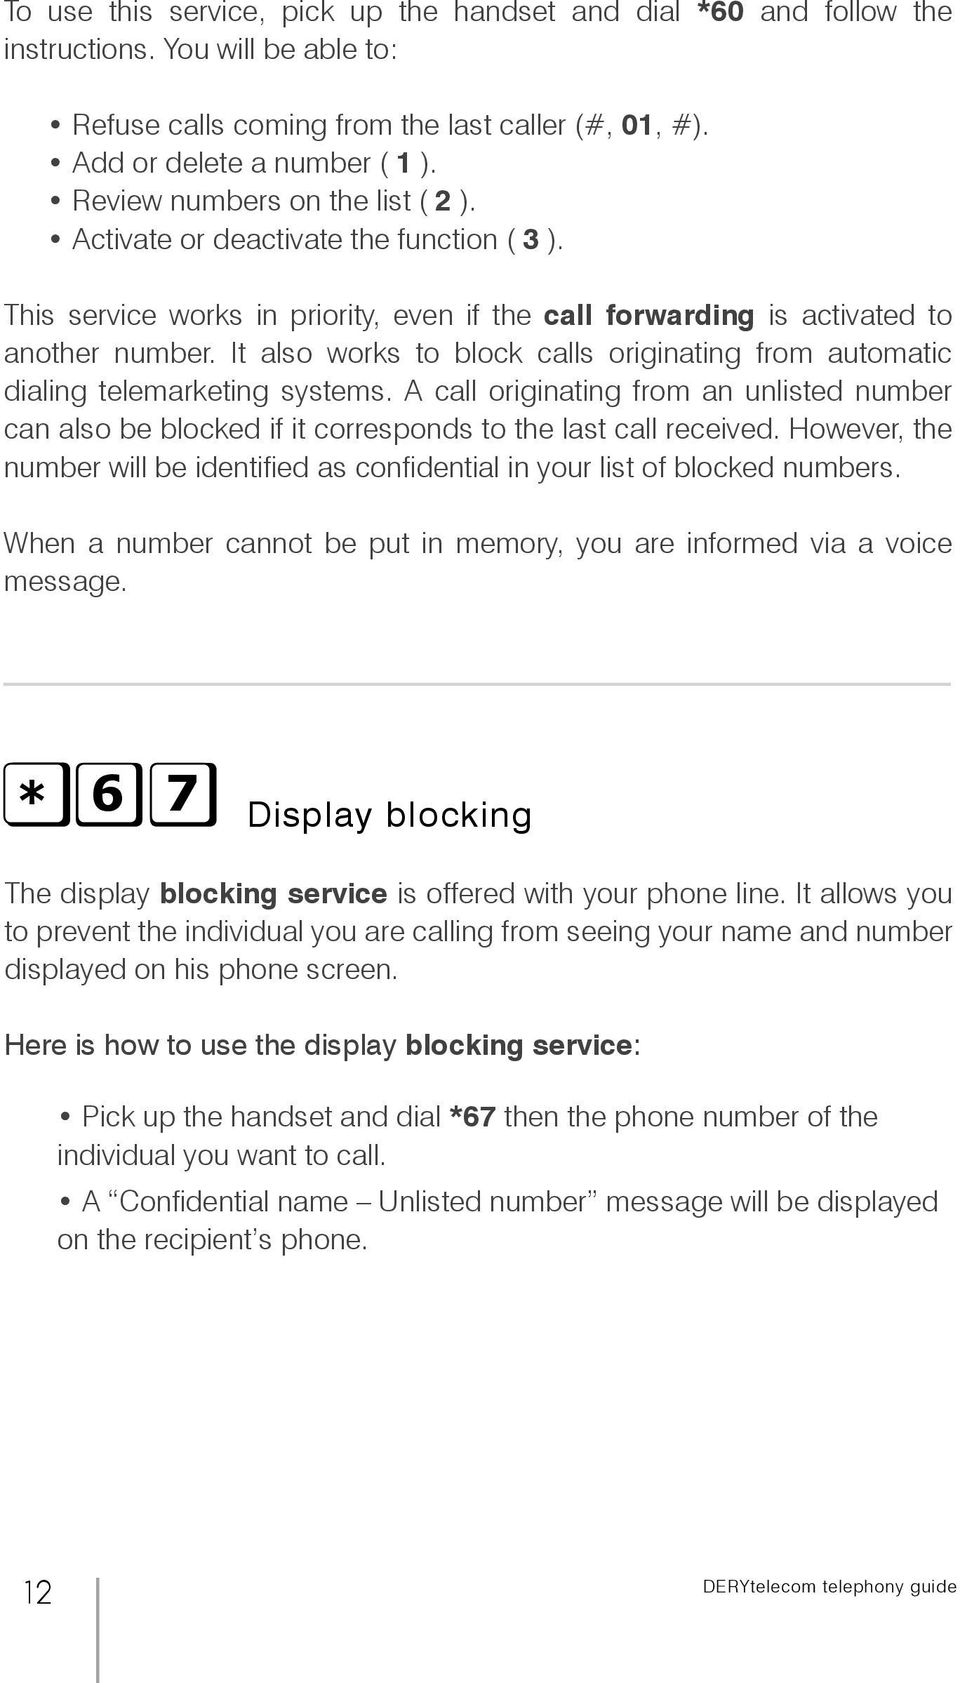 It also works to block calls originating from automatic dialing telemarketing systems. A call originating from an unlisted number can also be blocked if it corresponds to the last call received.